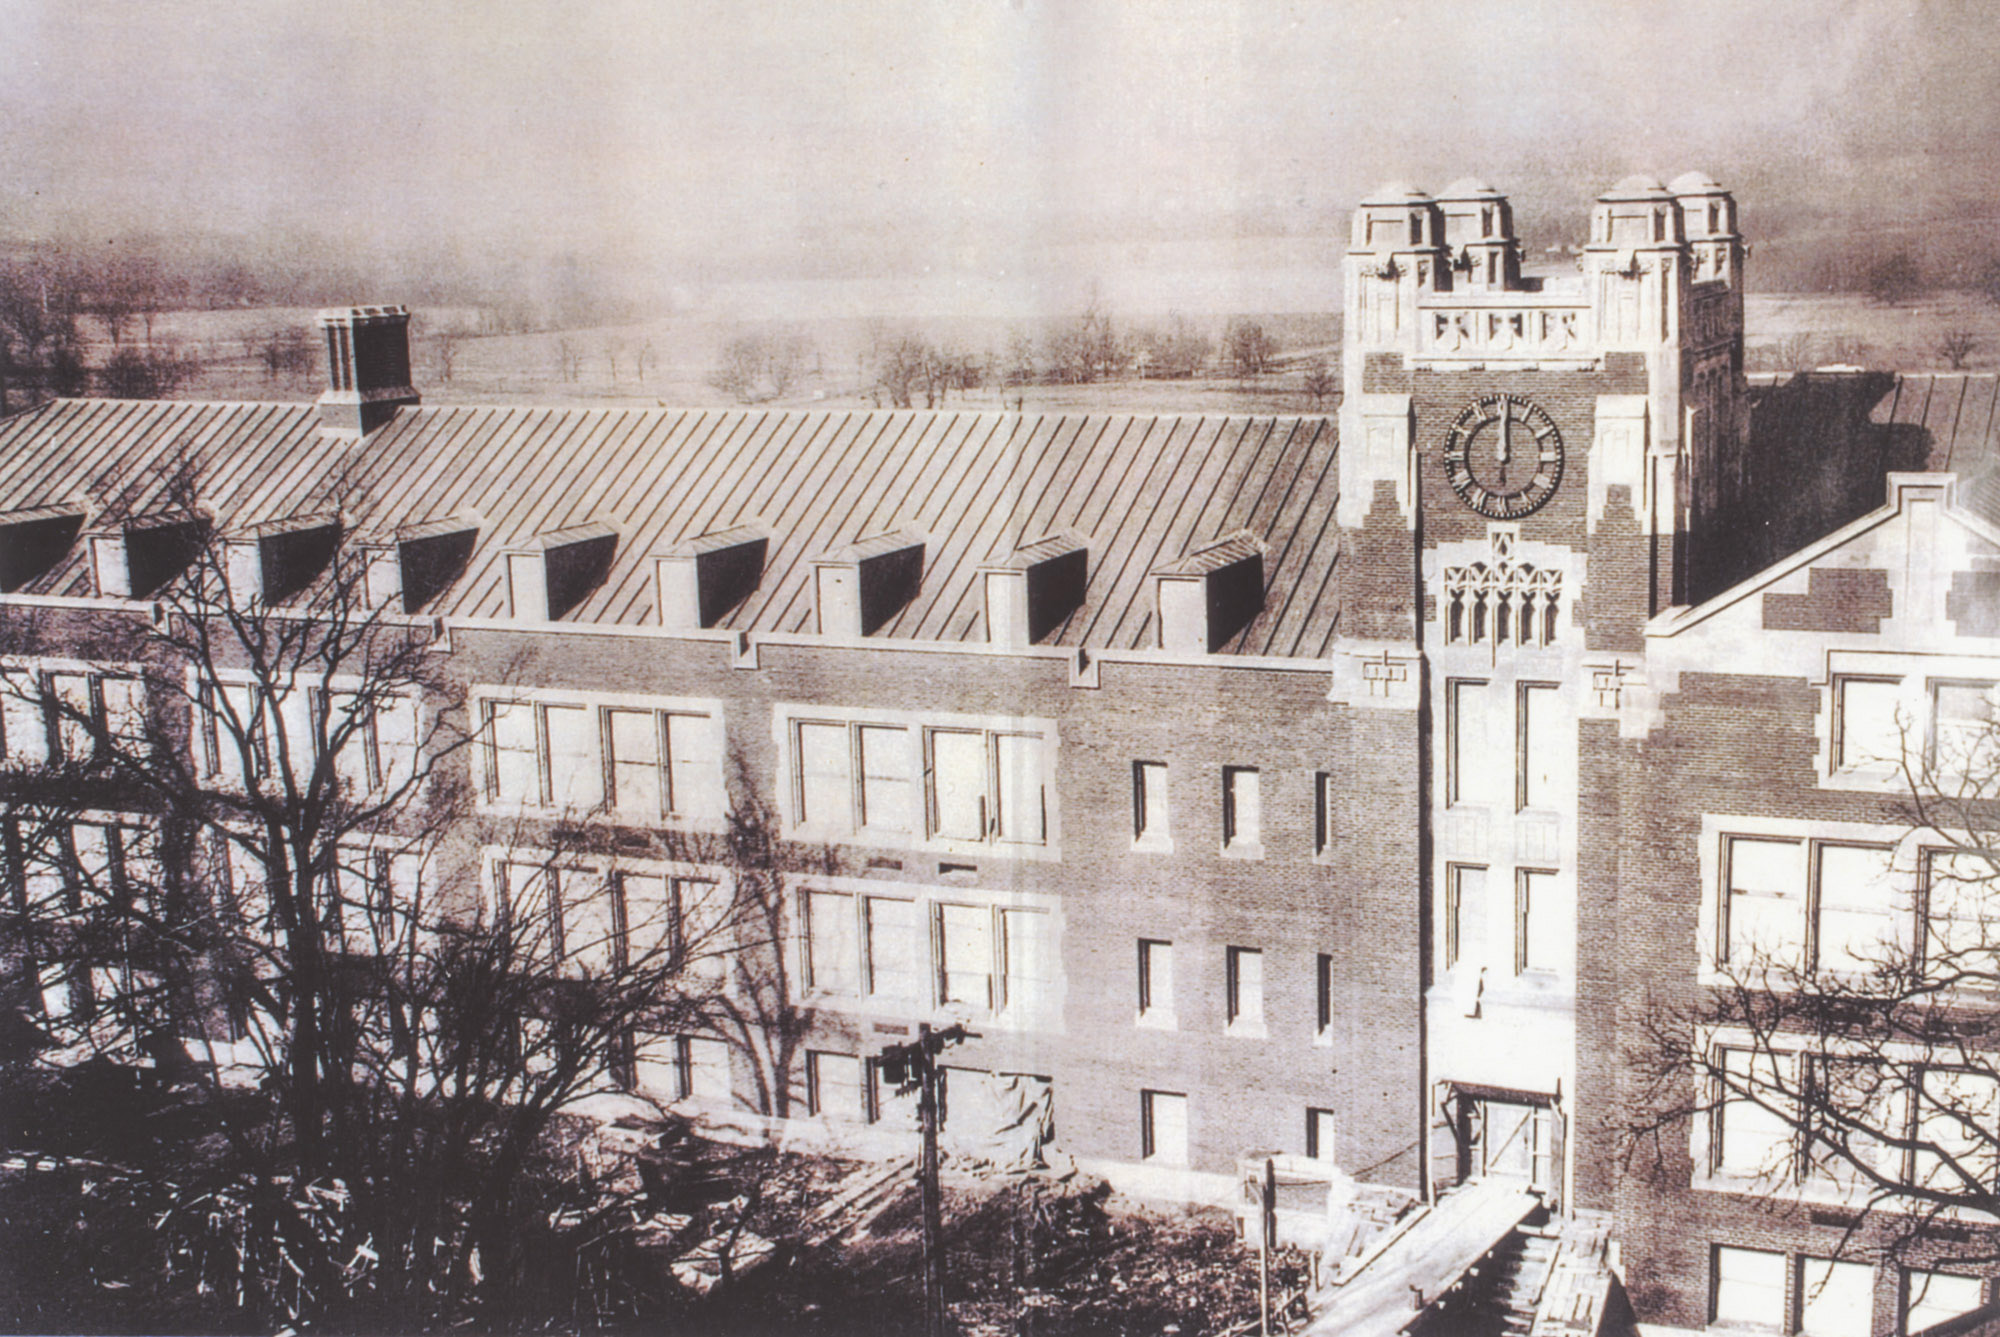 Class Room and Administration building (later Sturges Hall) under construction